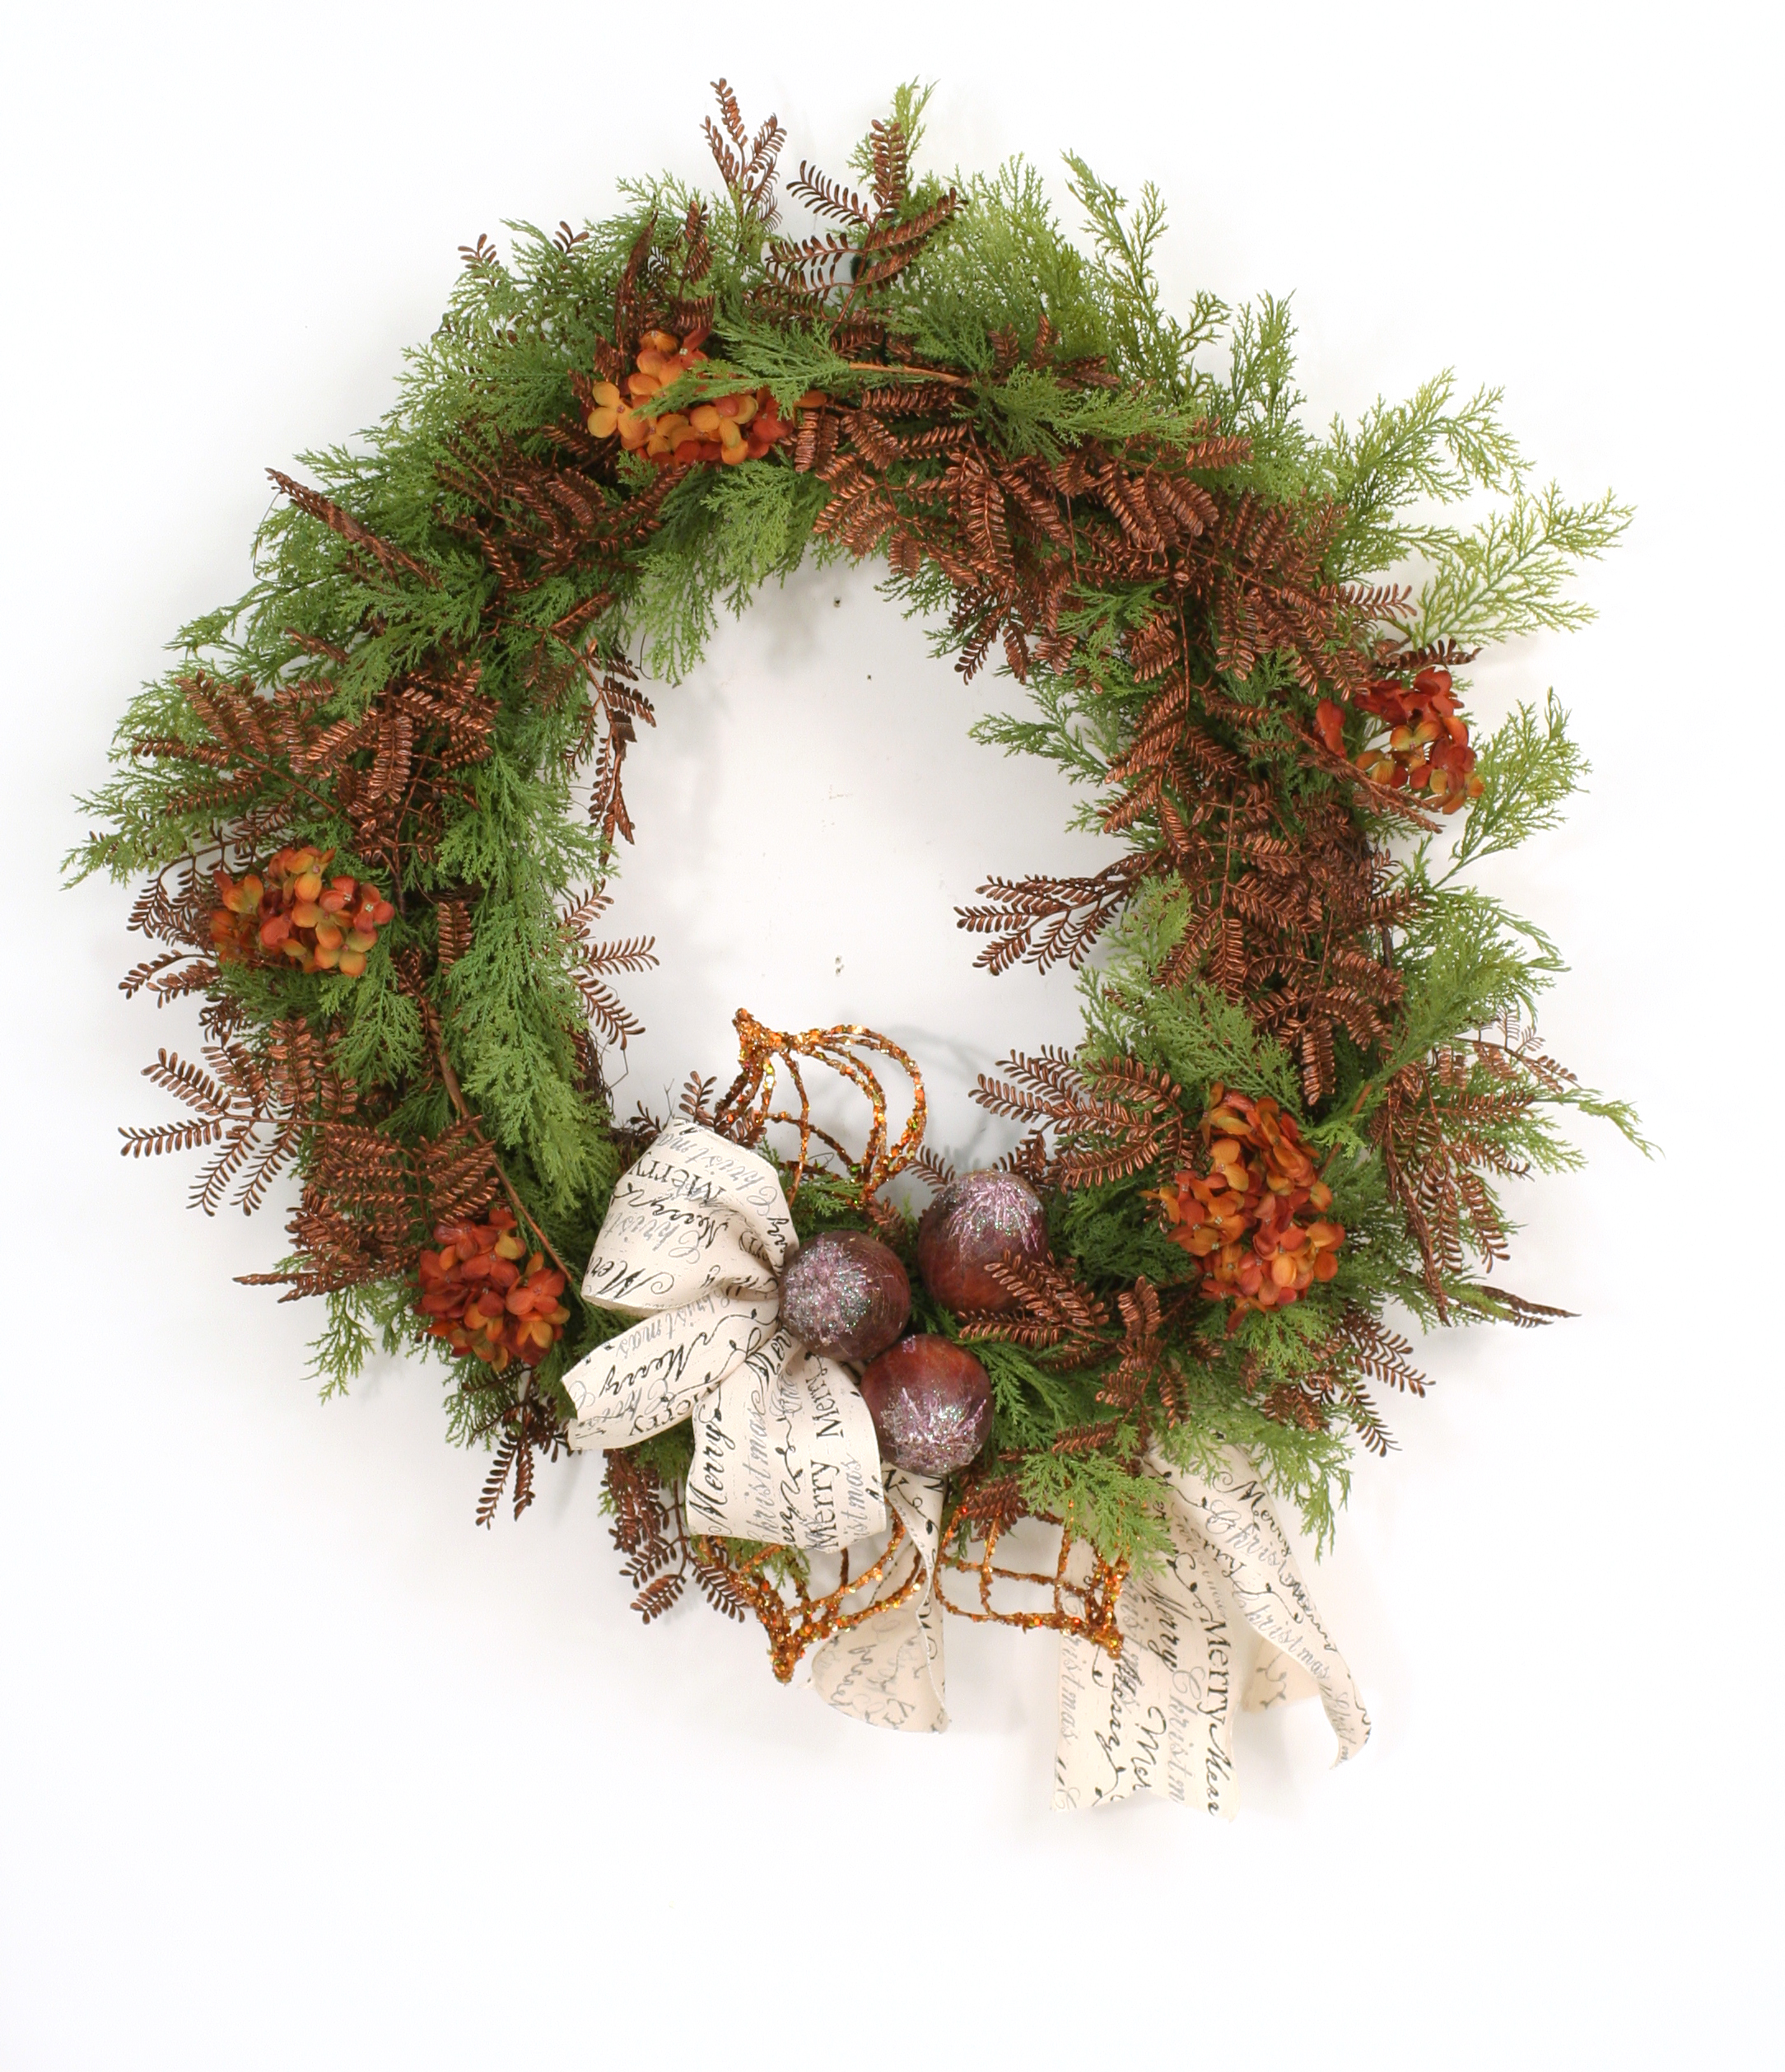 Merry Christmas - Cedar, Mimosa, and Ornament Wreath